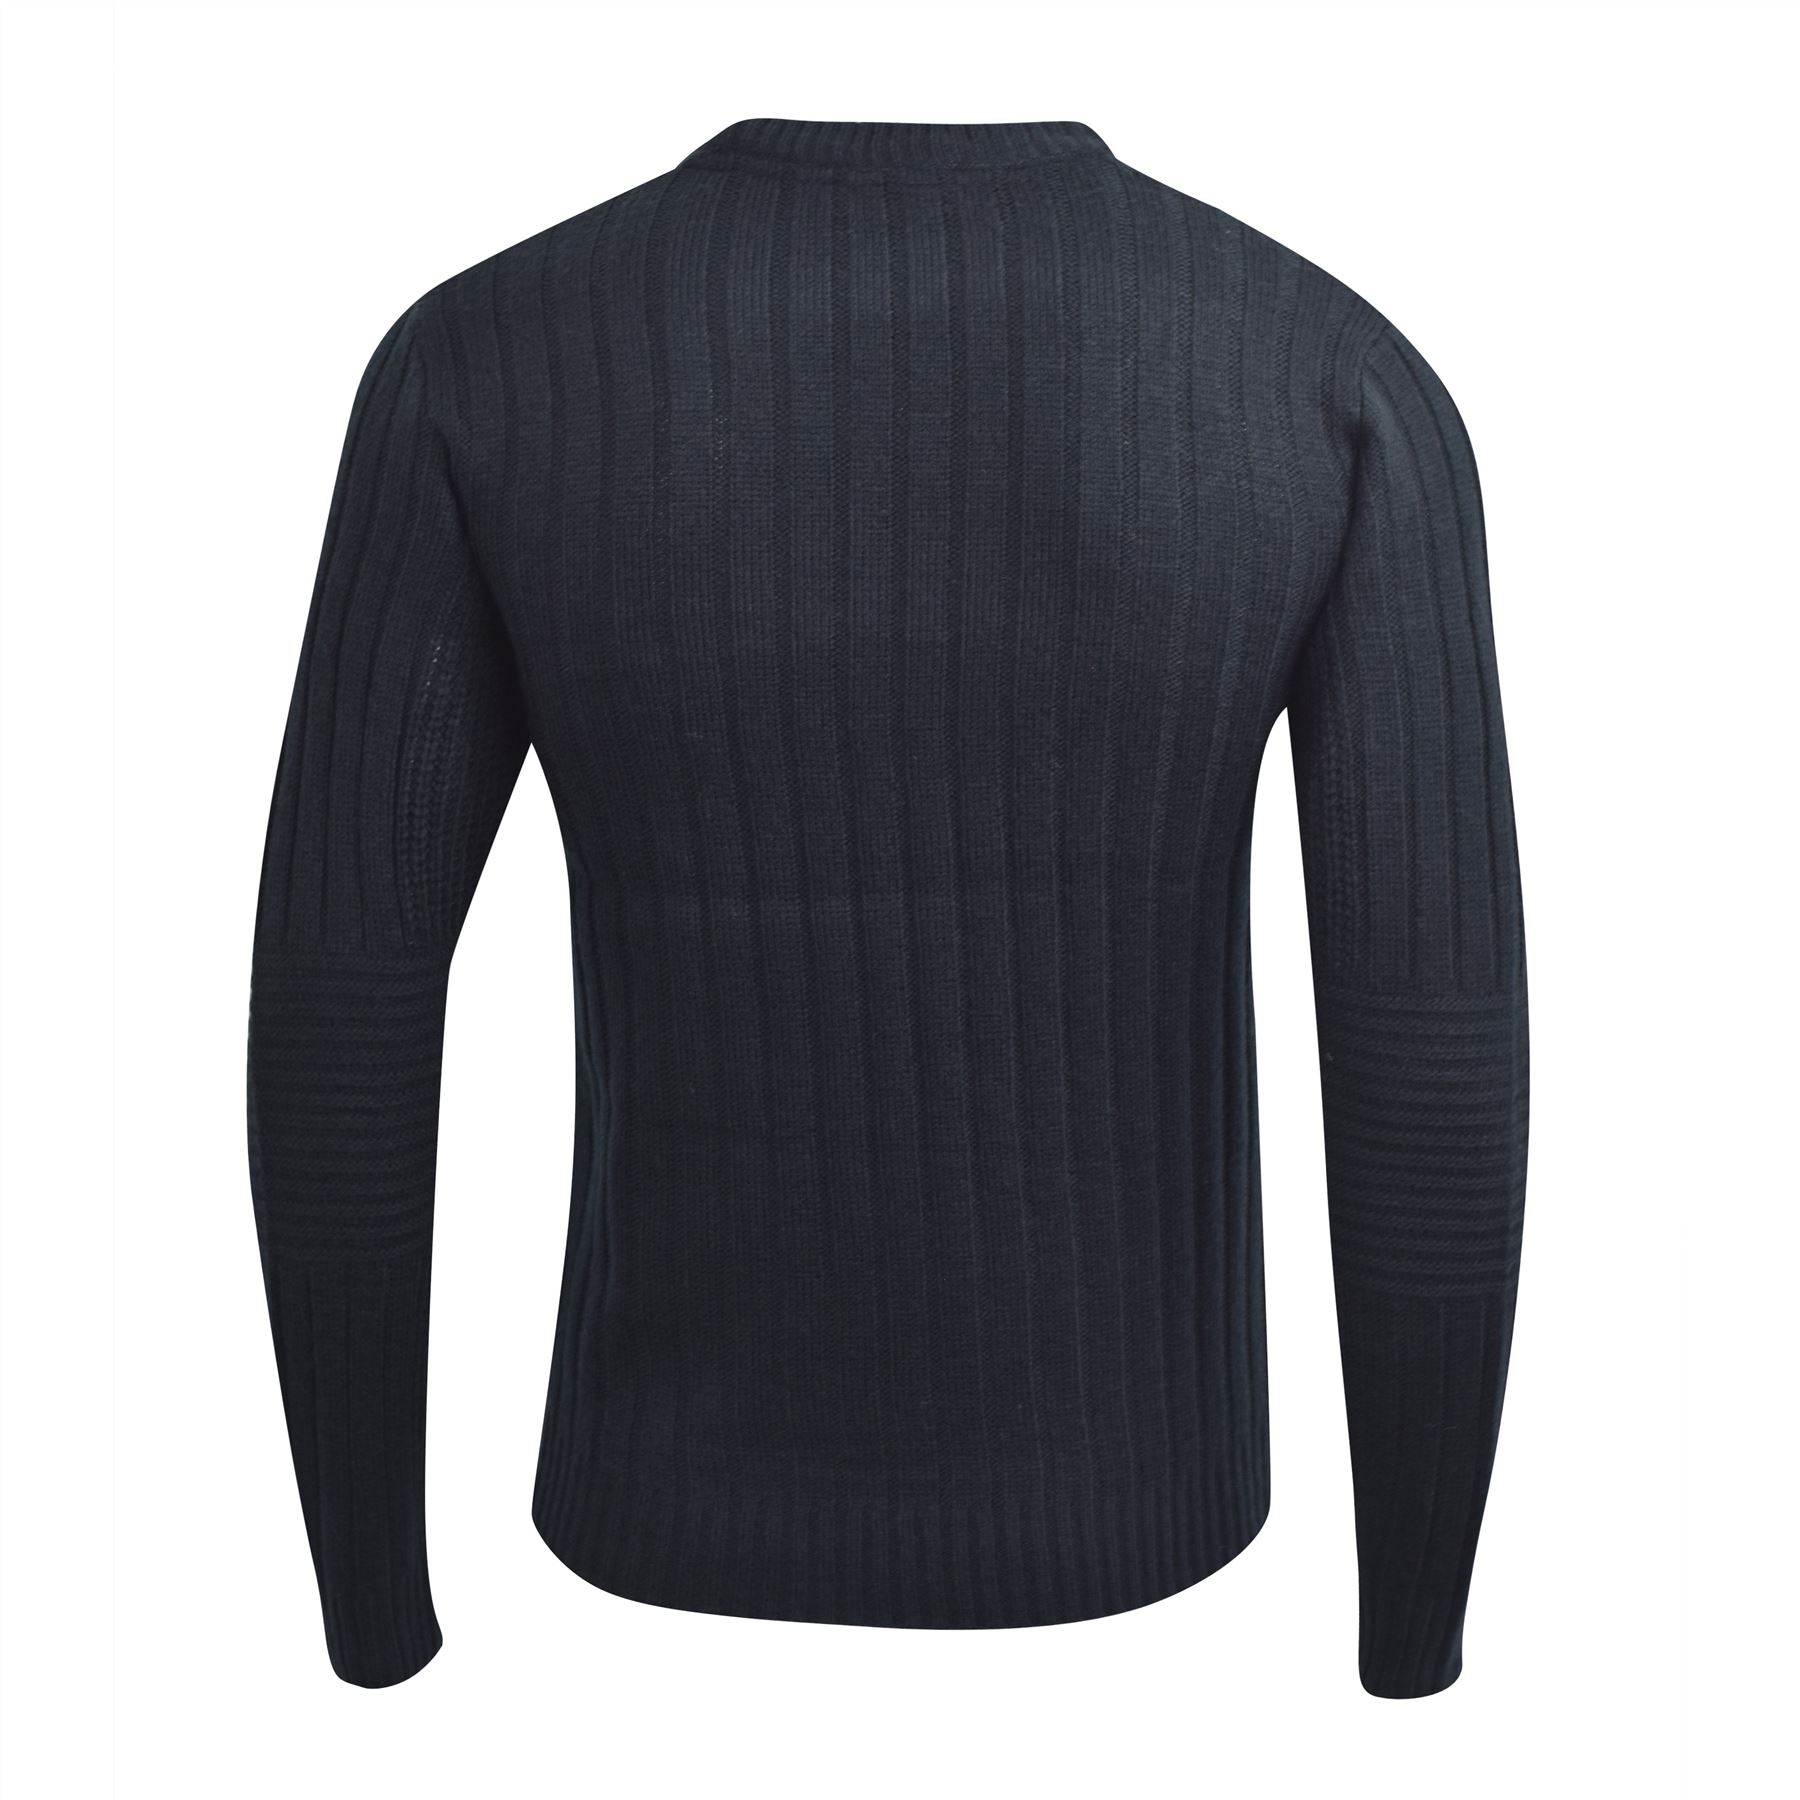 Mens-Knitwear-Crosshatch-Sweater-Textured-Knitted-Jumper thumbnail 5